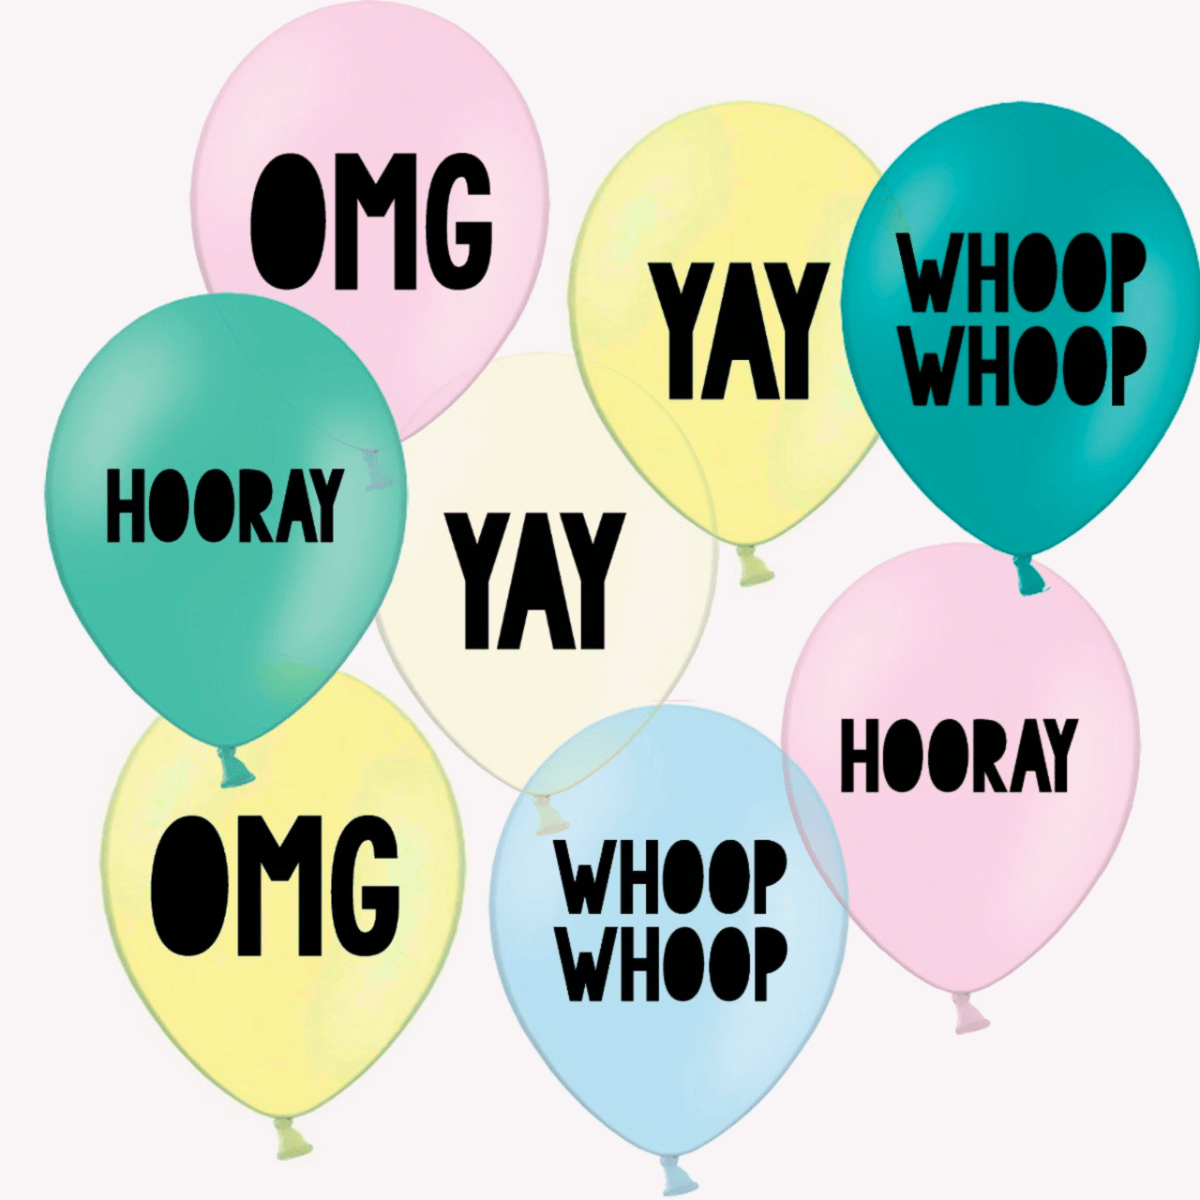 Yay Party Balloons | Yay OMG Balloons Pretty Little Party Shop